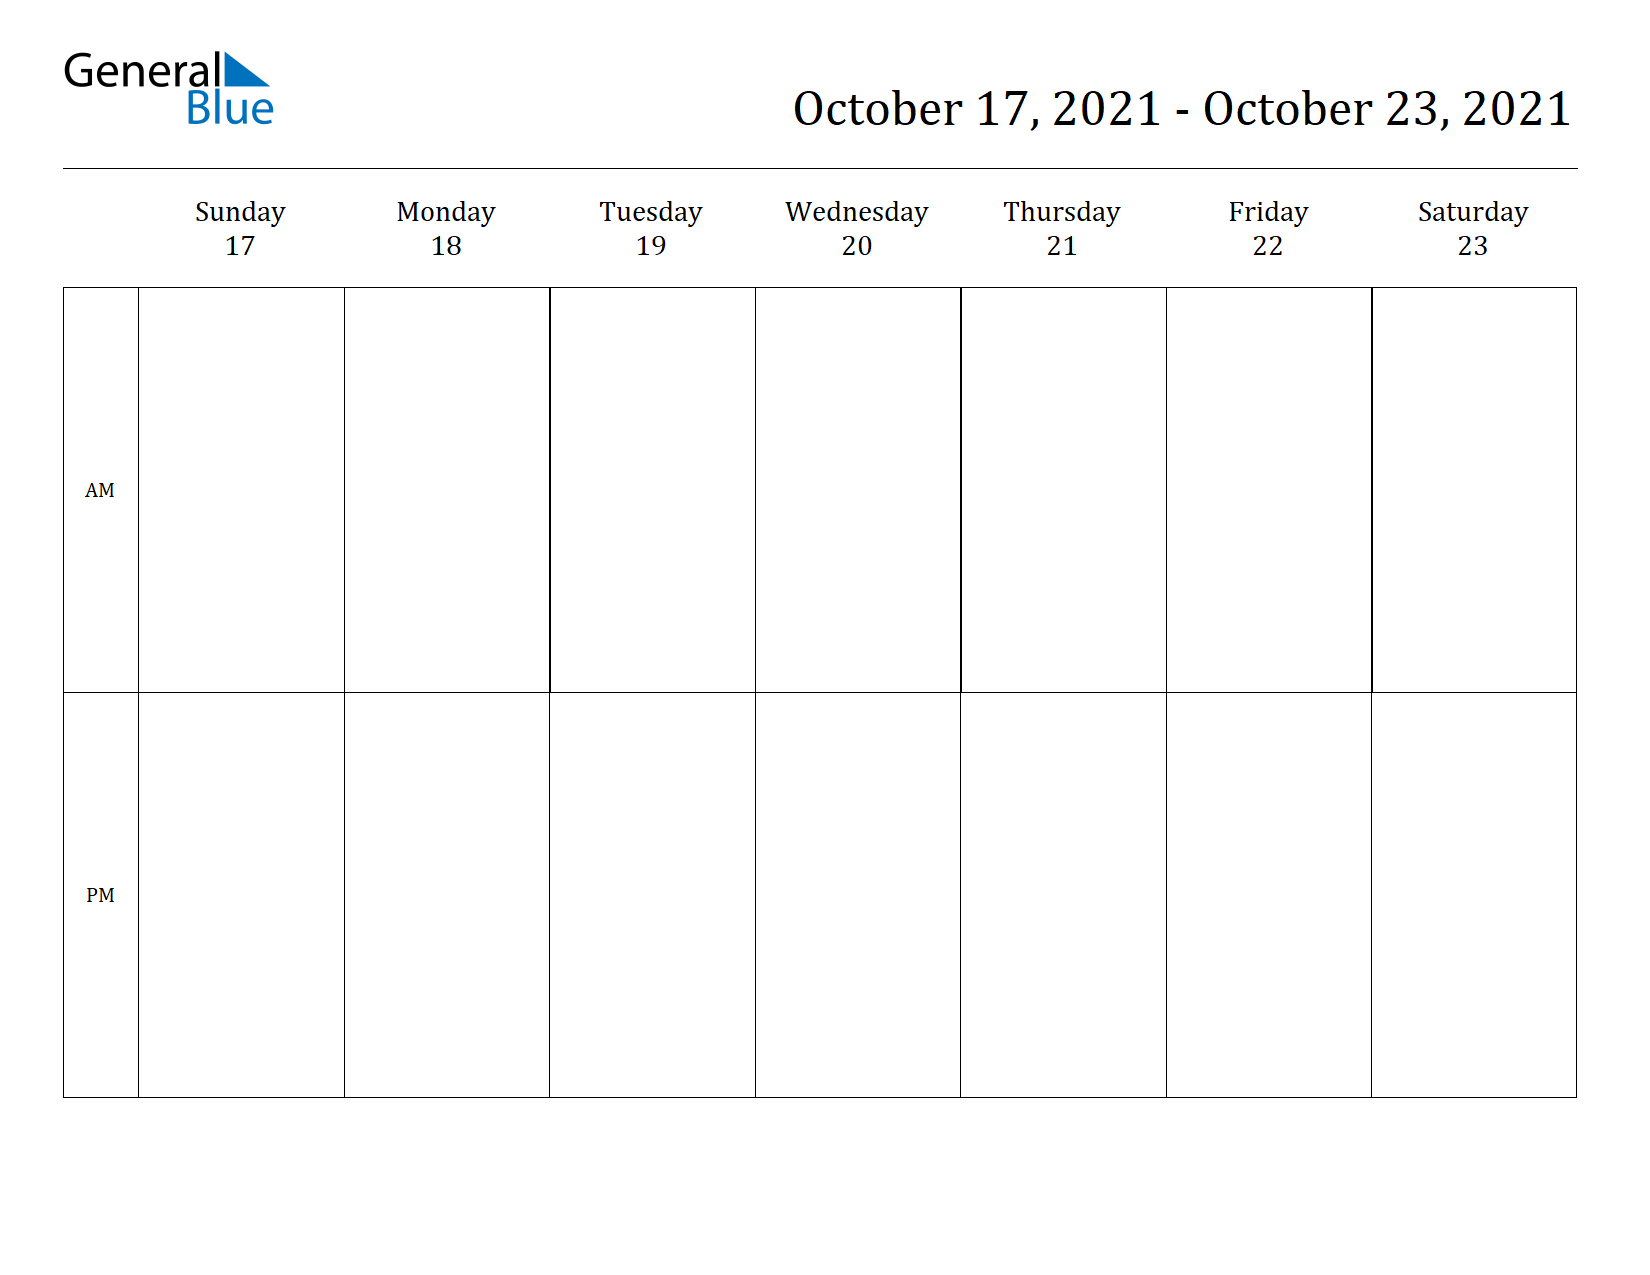 Weekly Calendar for Oct 17, 2021 to Oct 23, 2021